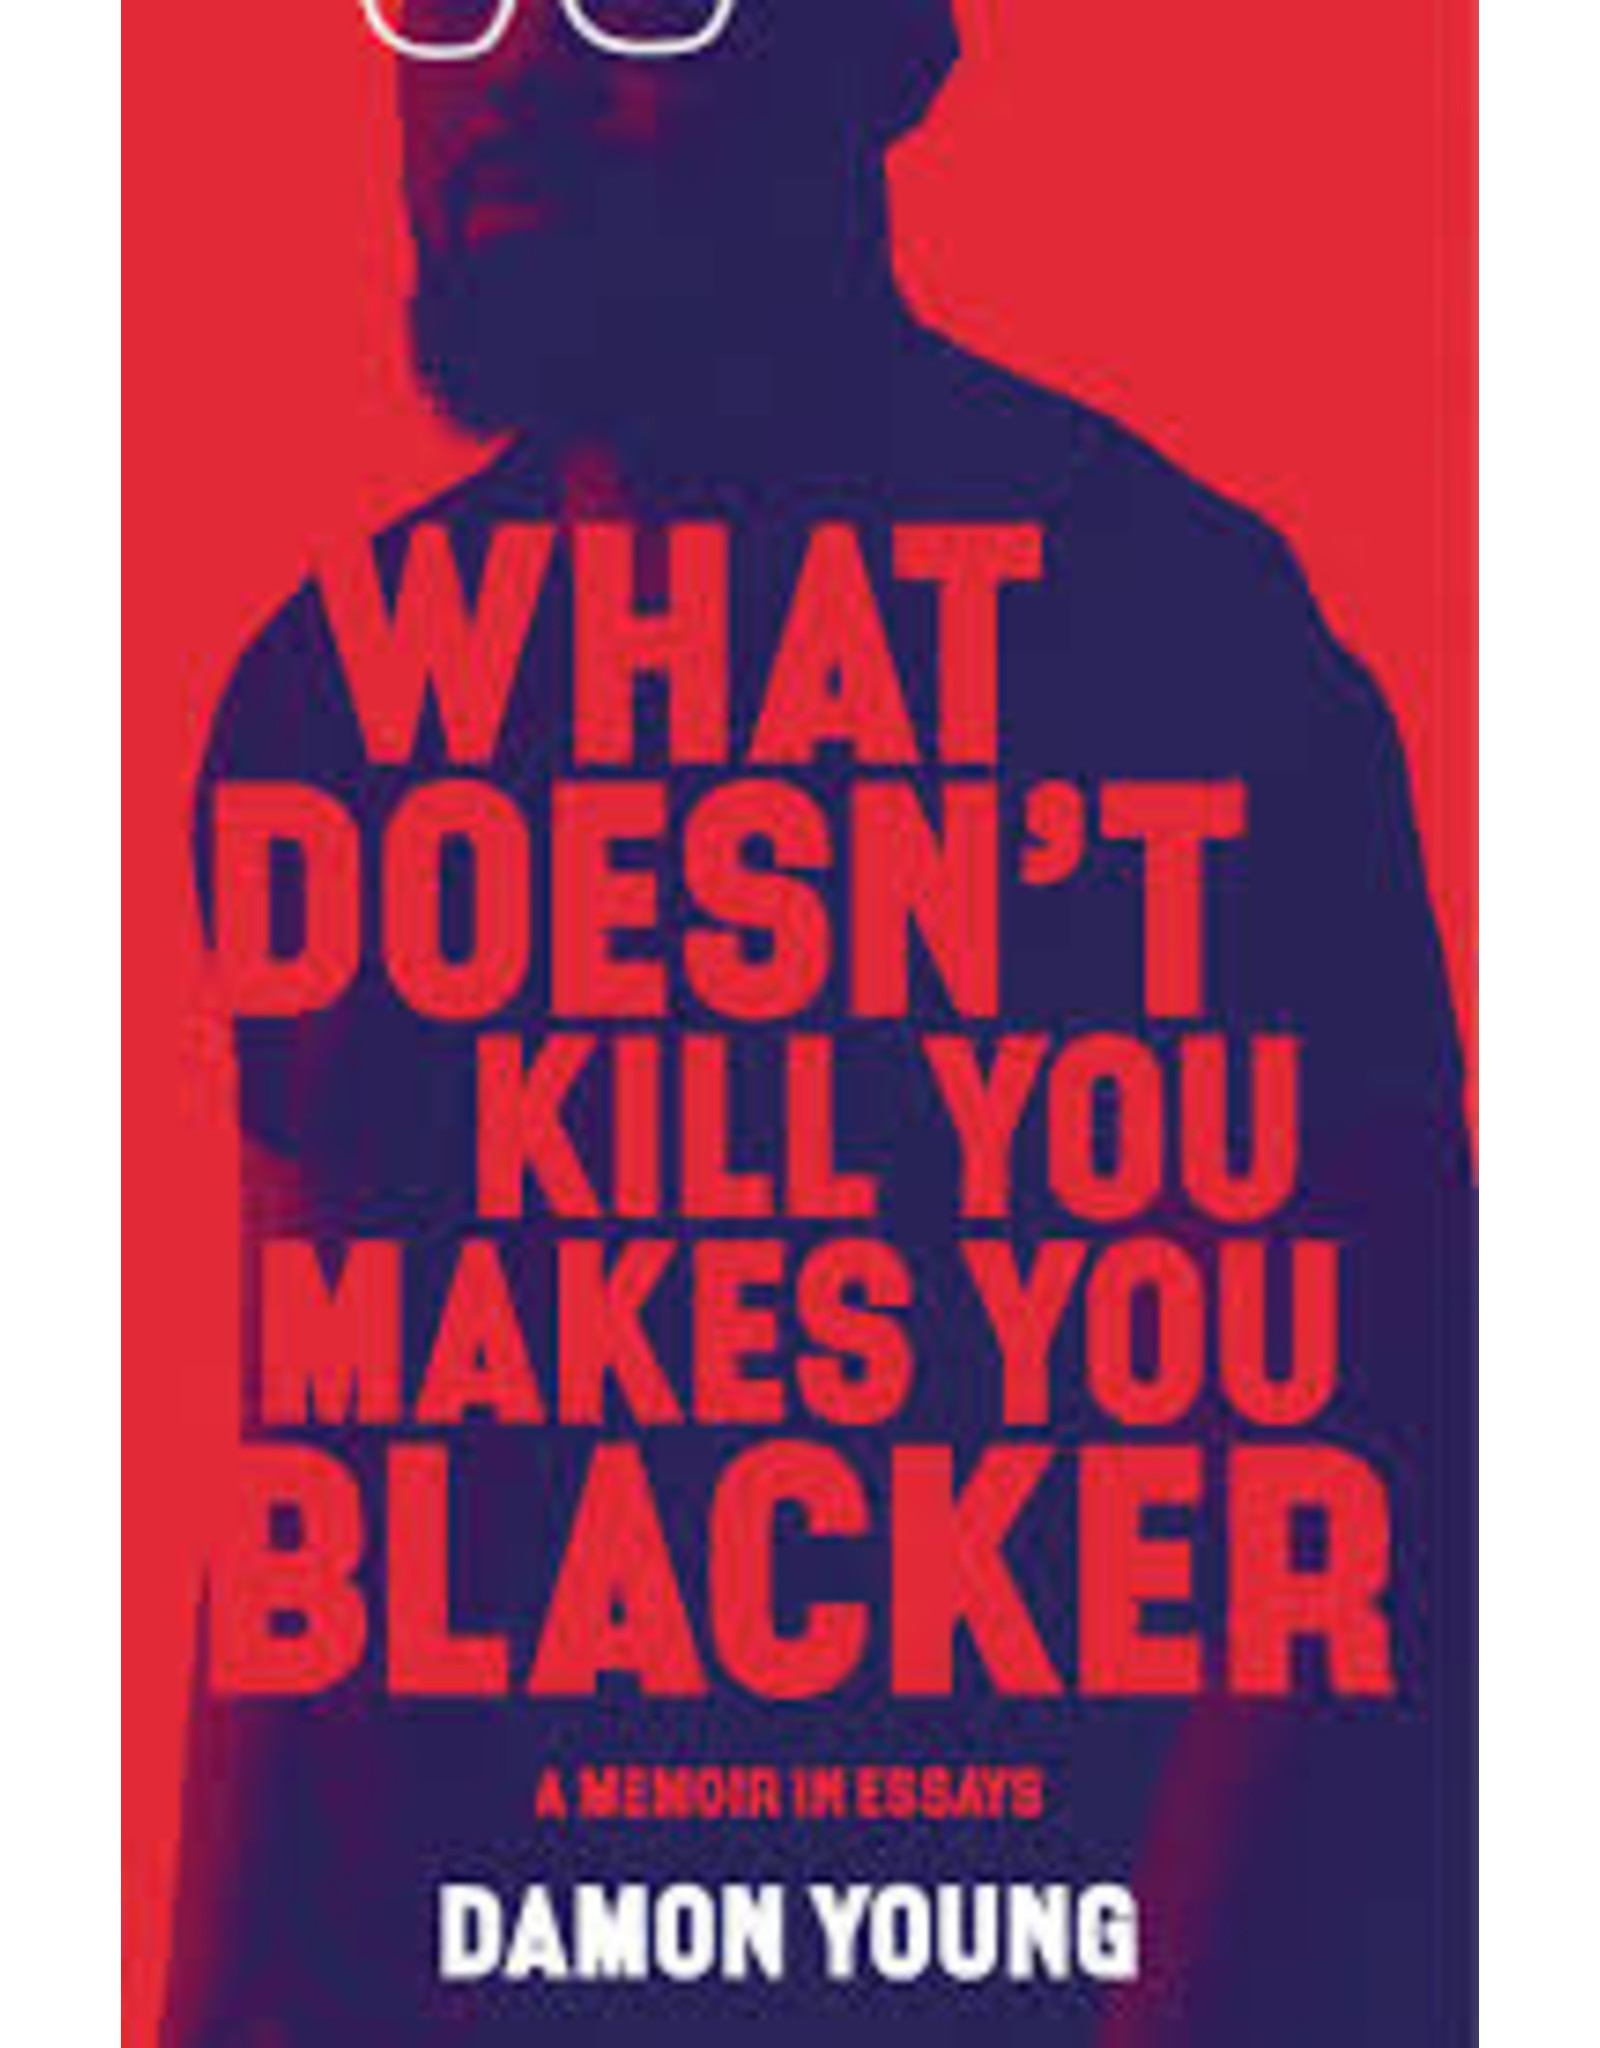 Books What Doesn't Kill You Makes You Blacker by Damon Young